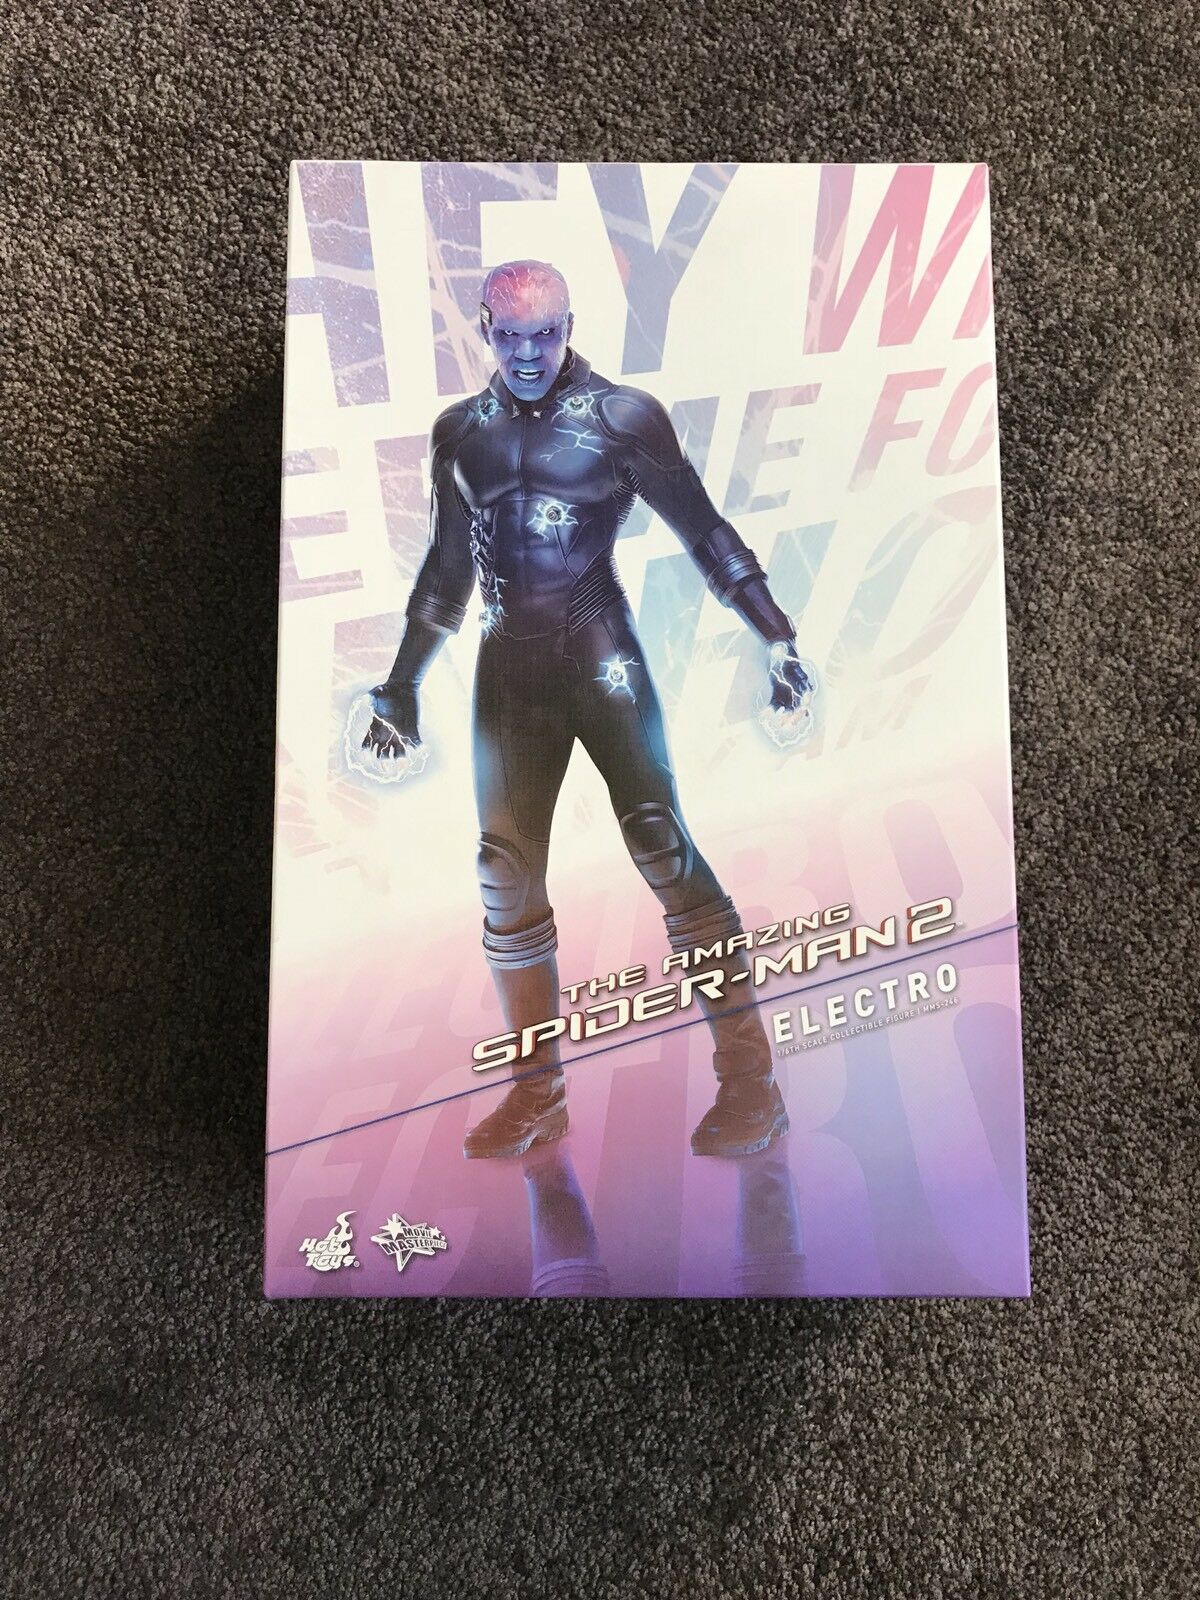 1 6 Scale Hot Toys Amazing Spider-Man 2 Electro Figure. Brand New In Box